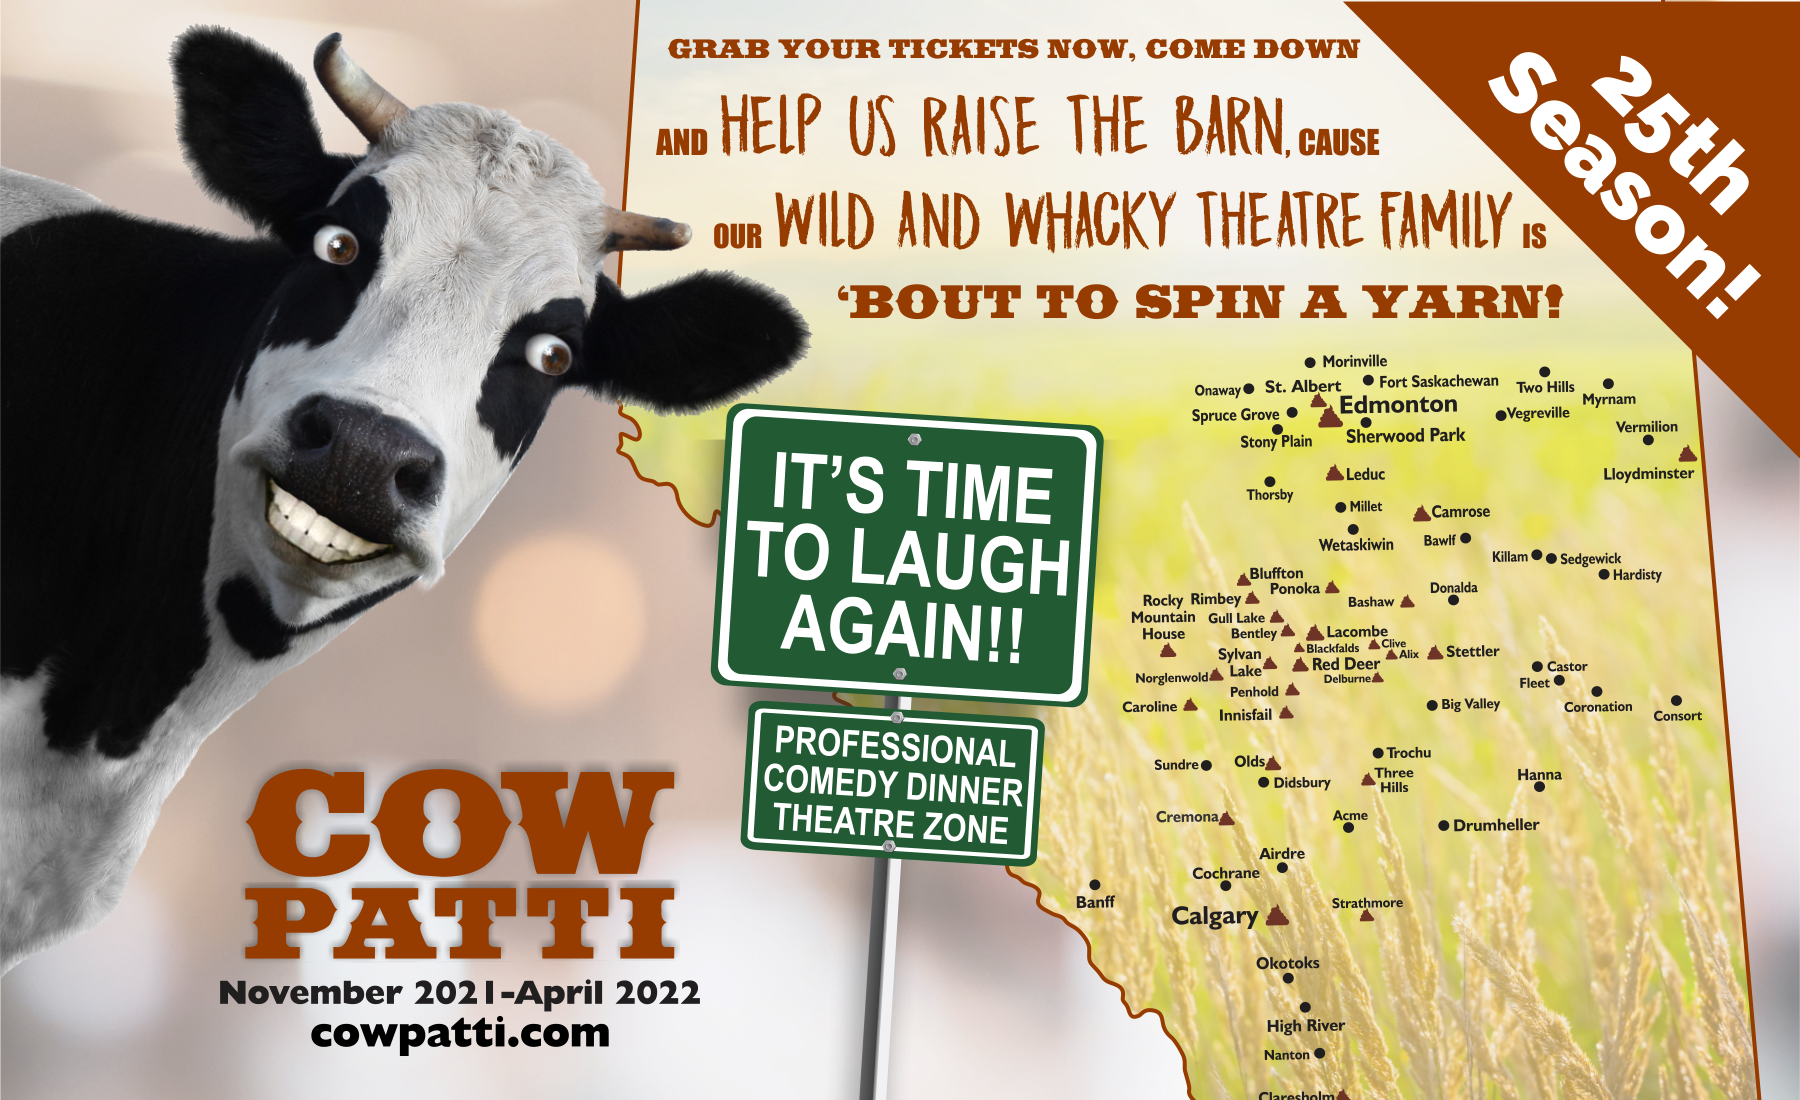 Cow Patti Comedy Theatre - Grab Your tickets now, help us raise the barn, for our wacky and wild theatre family is about to spin a yarn!